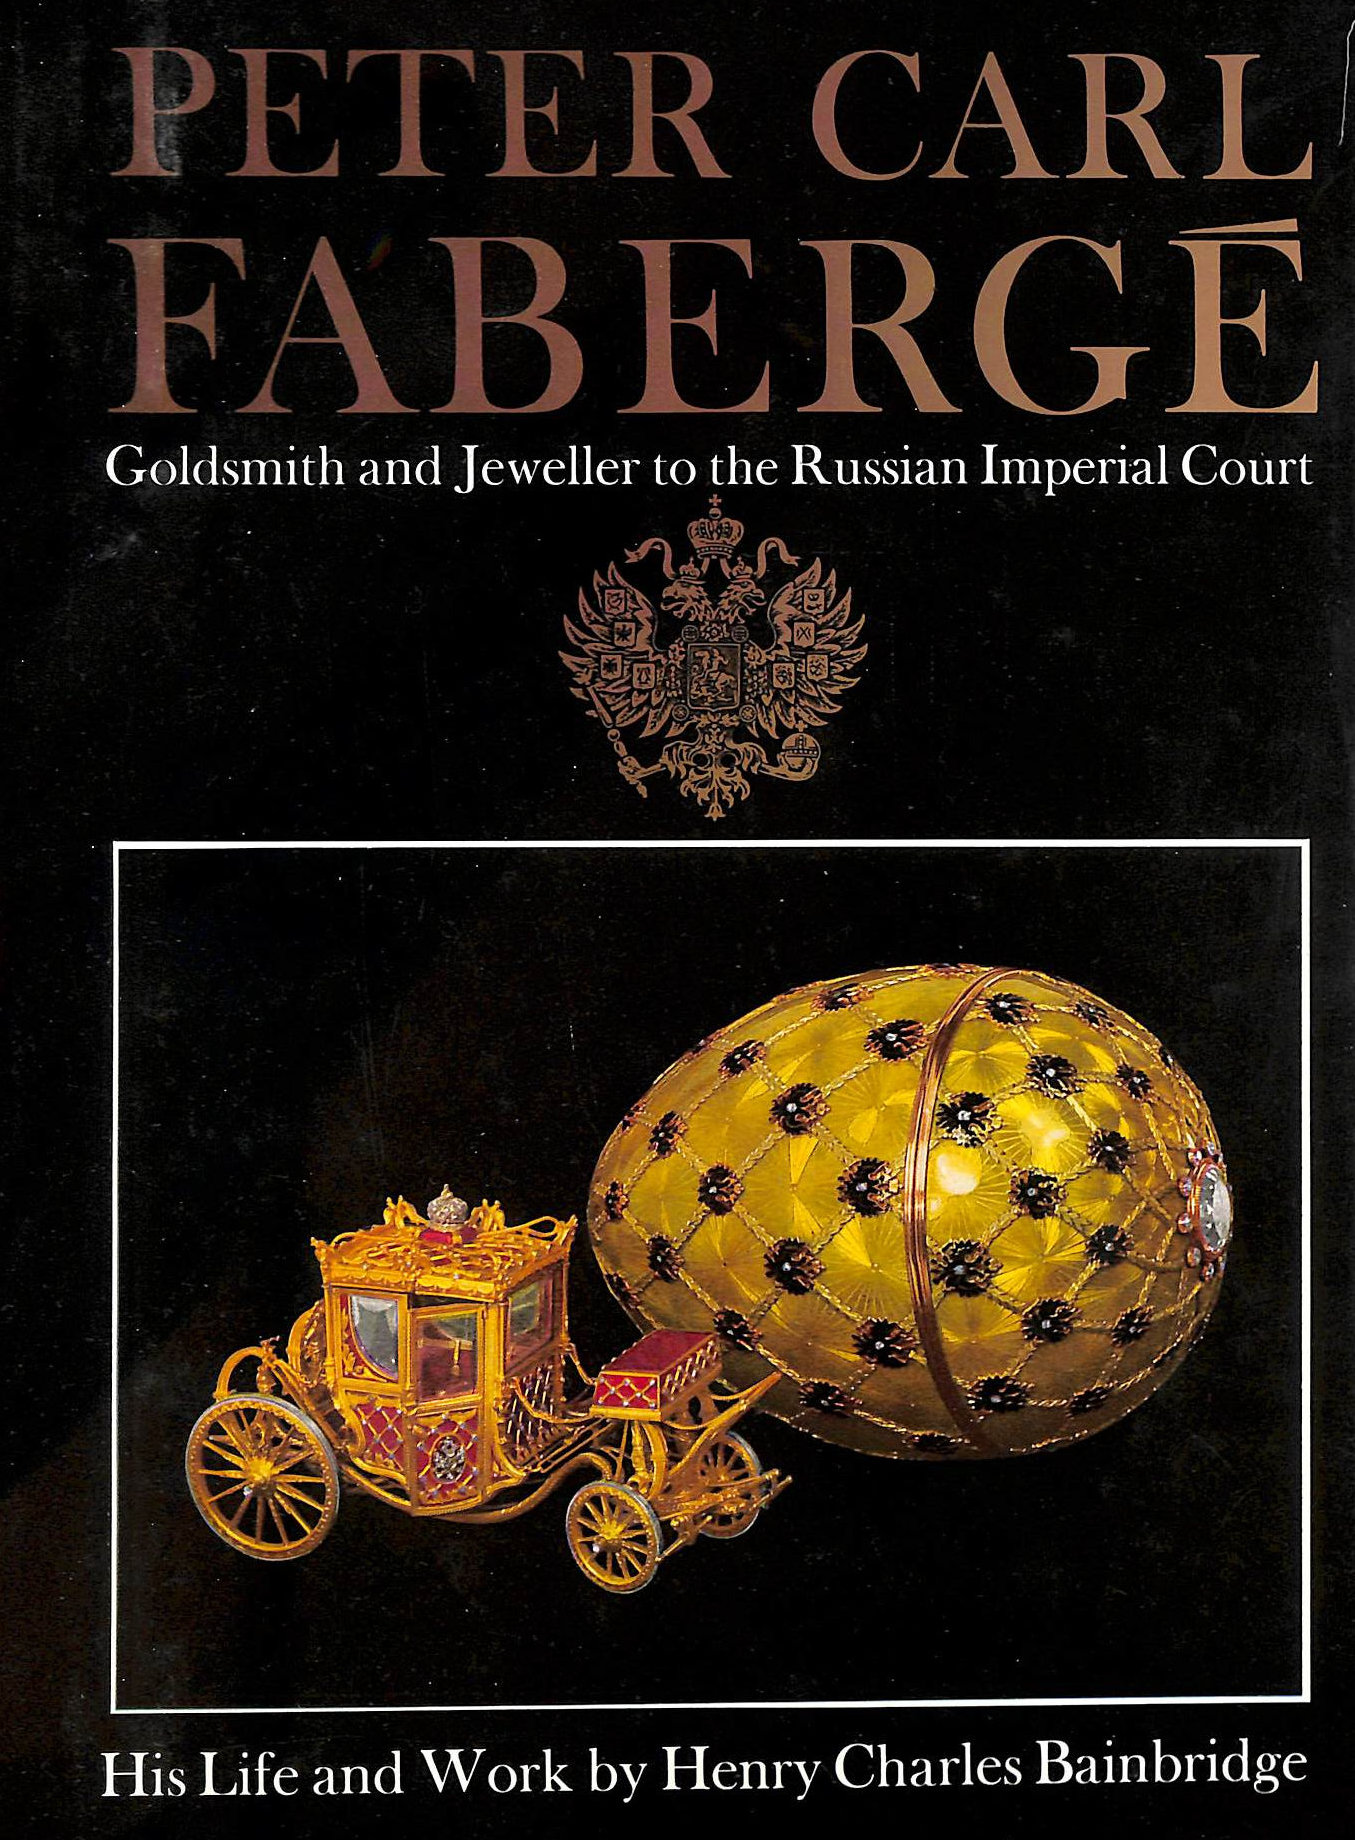 Image for Peter Carl Faberge: Goldsmith and Jeweller to the Russian Imperial Court ~ His Life and Work